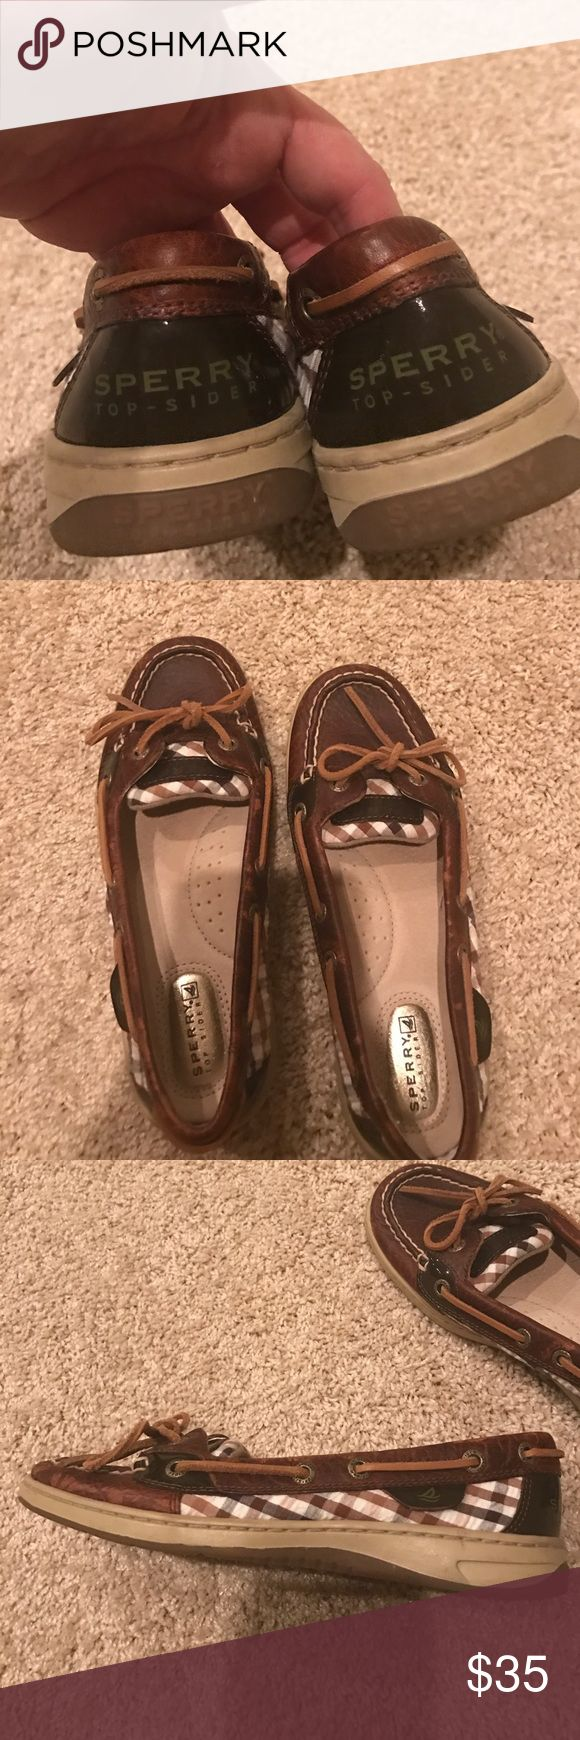 Sperry Top Sider Sperry Top Sider boat shoes New without tags. Never been worn Sperry Top-Sider Shoes Flats & Loafers